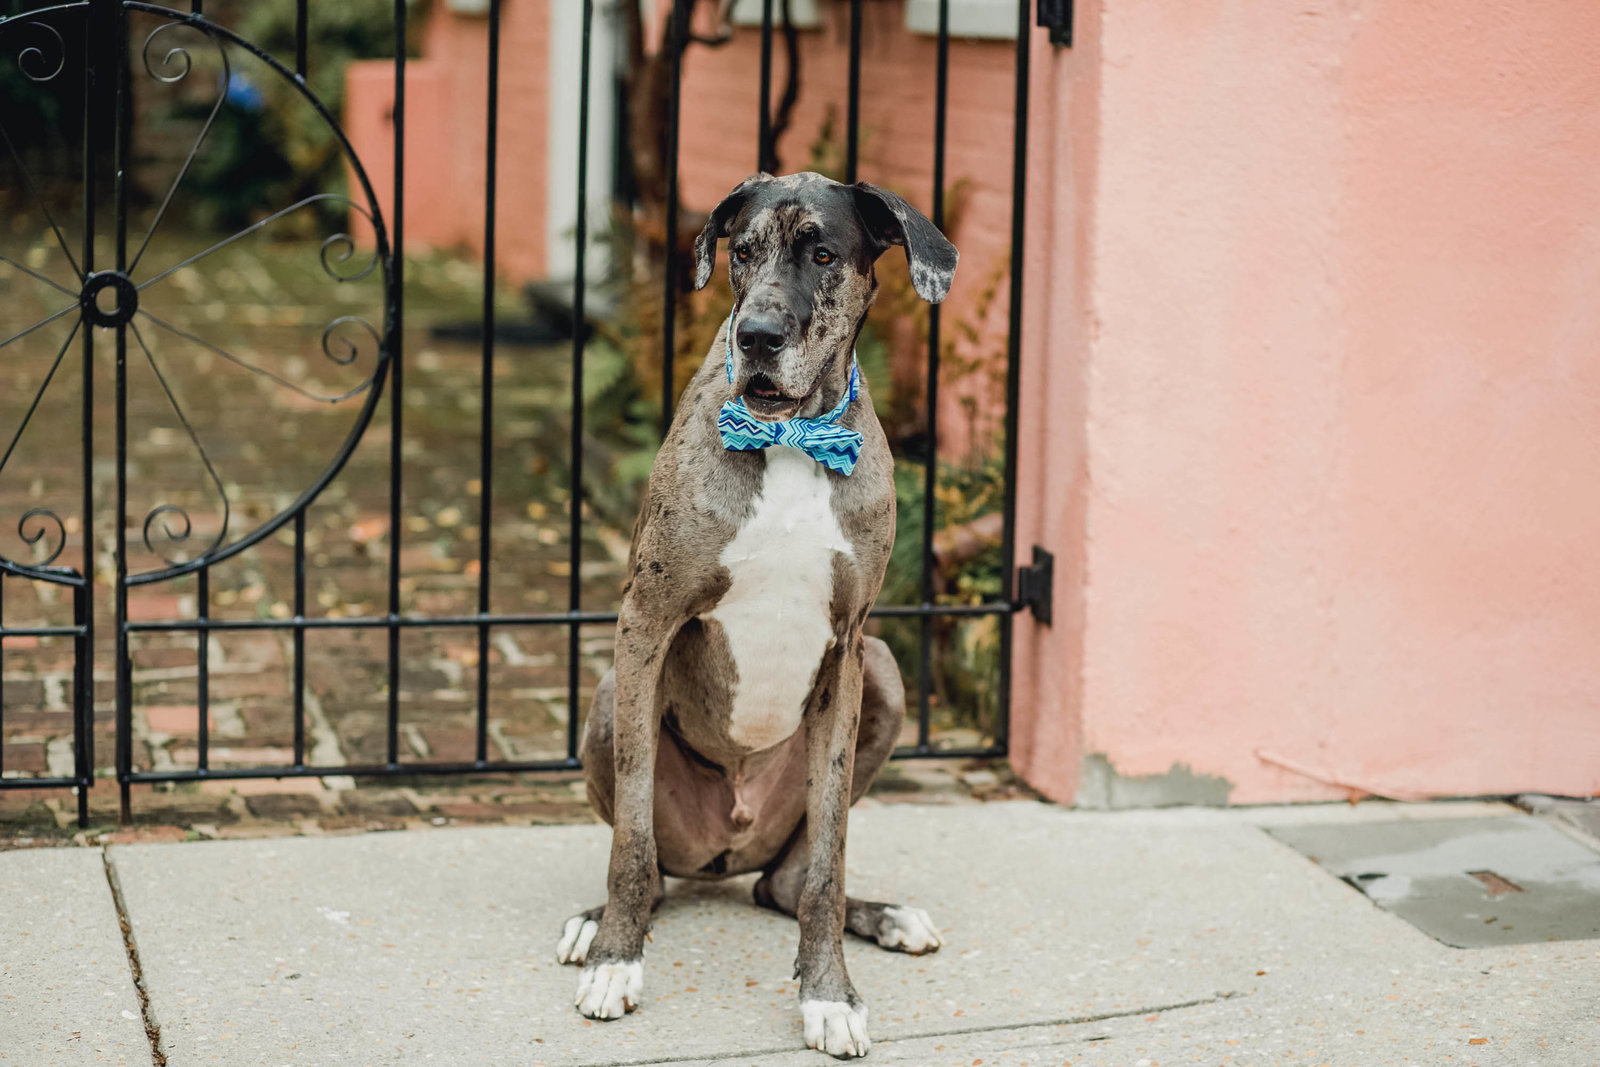 dog-lifestyle-fun-silly-portrait-candid-charleston-sc-kate-timbers-photography-10214